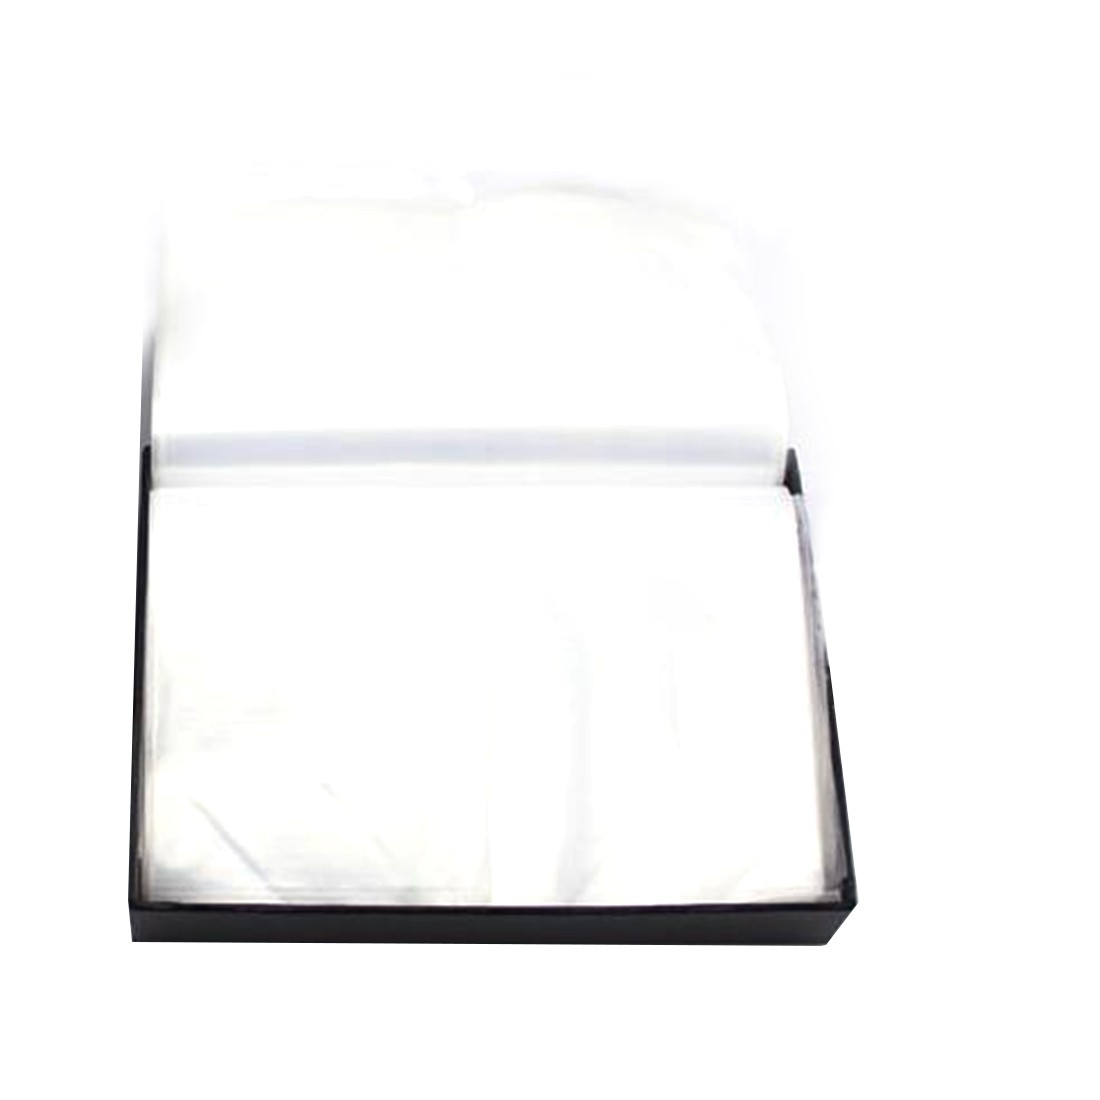 100 Pcs Sterilization Pouches Bag Medical-grade Tattoo Bottle Washing Bag